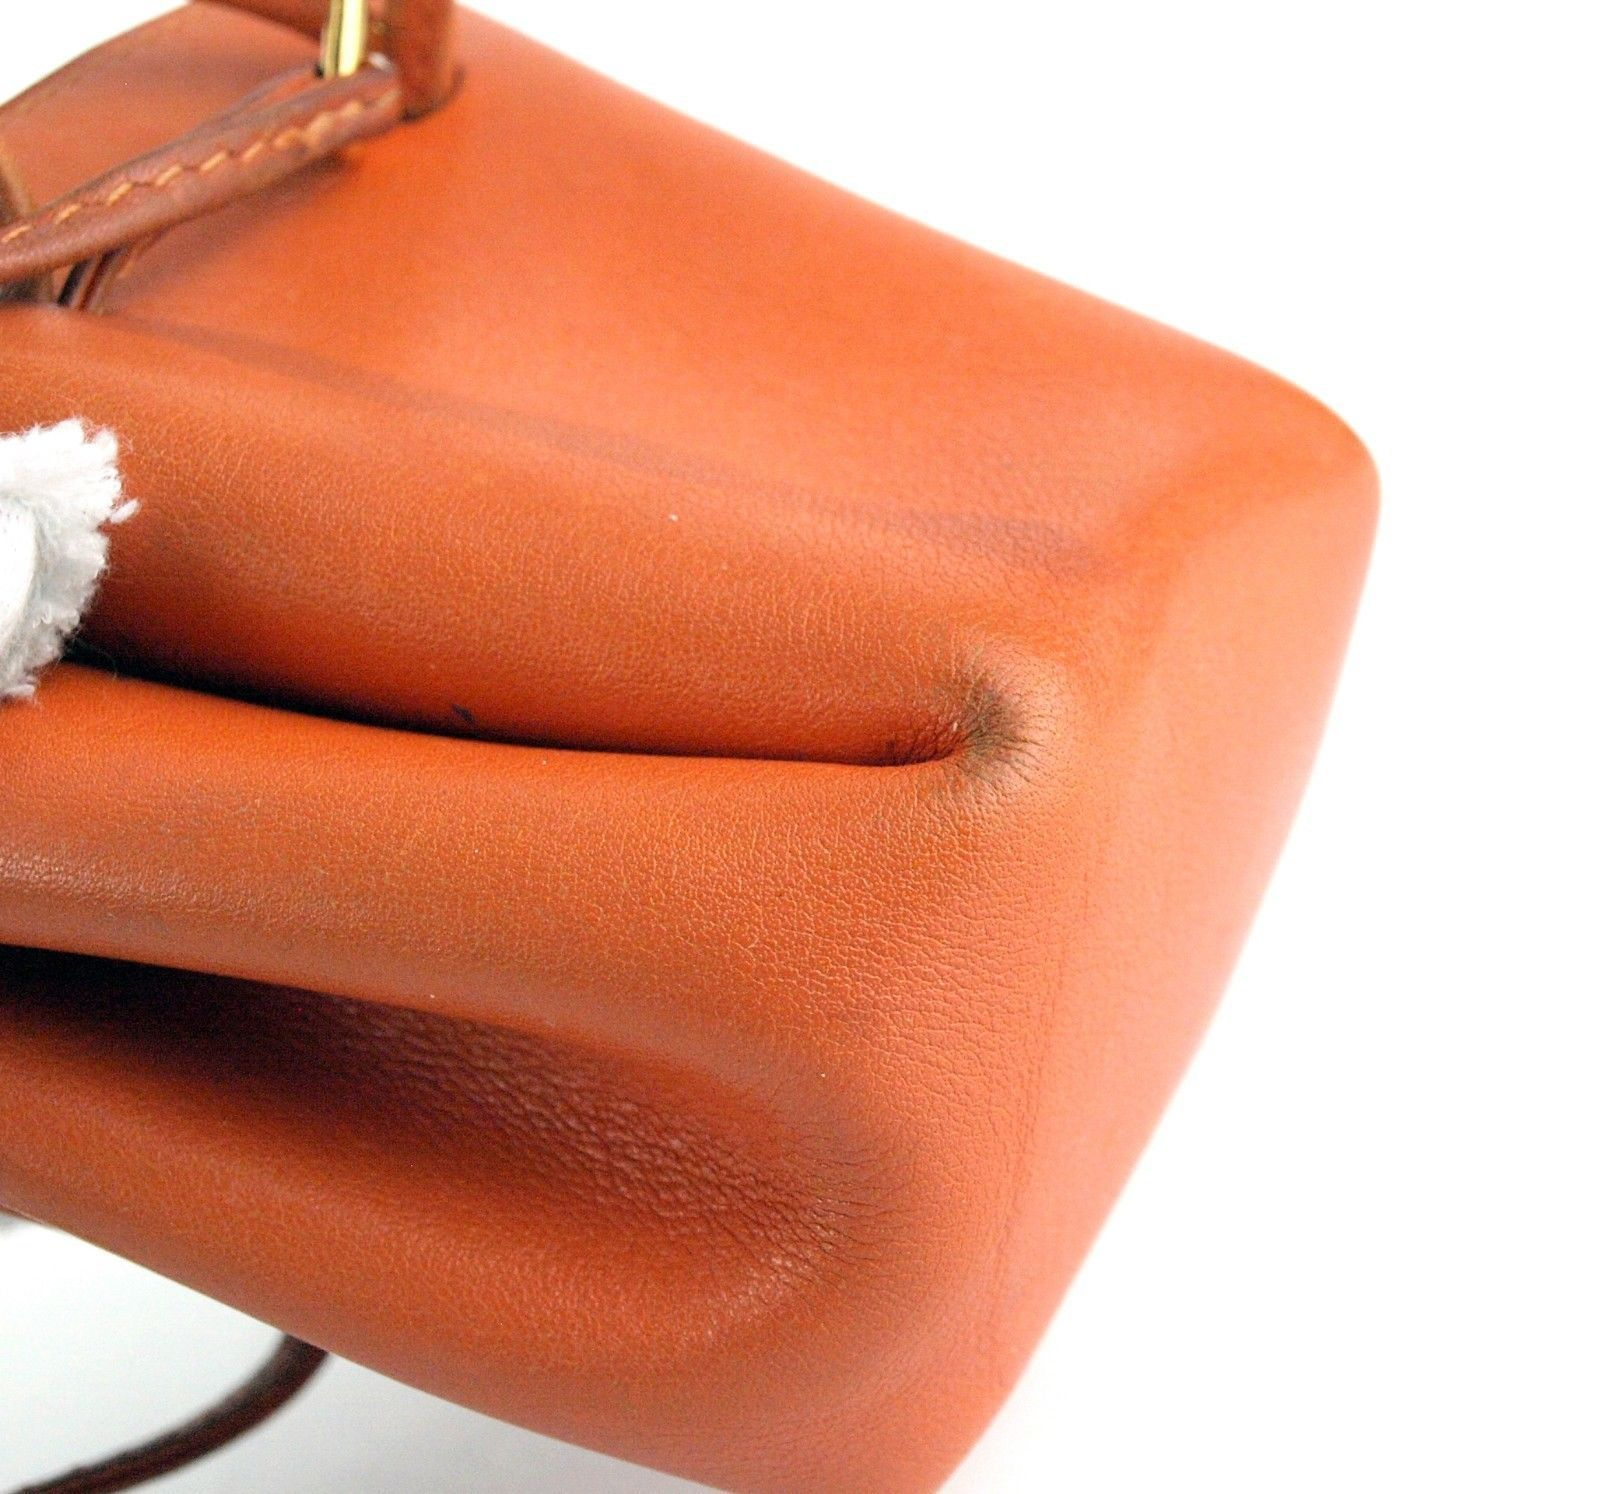 Authentic HERMES Paris Orange Leather Tiny Cosmetic Pouch Wristlet Purse France image 6